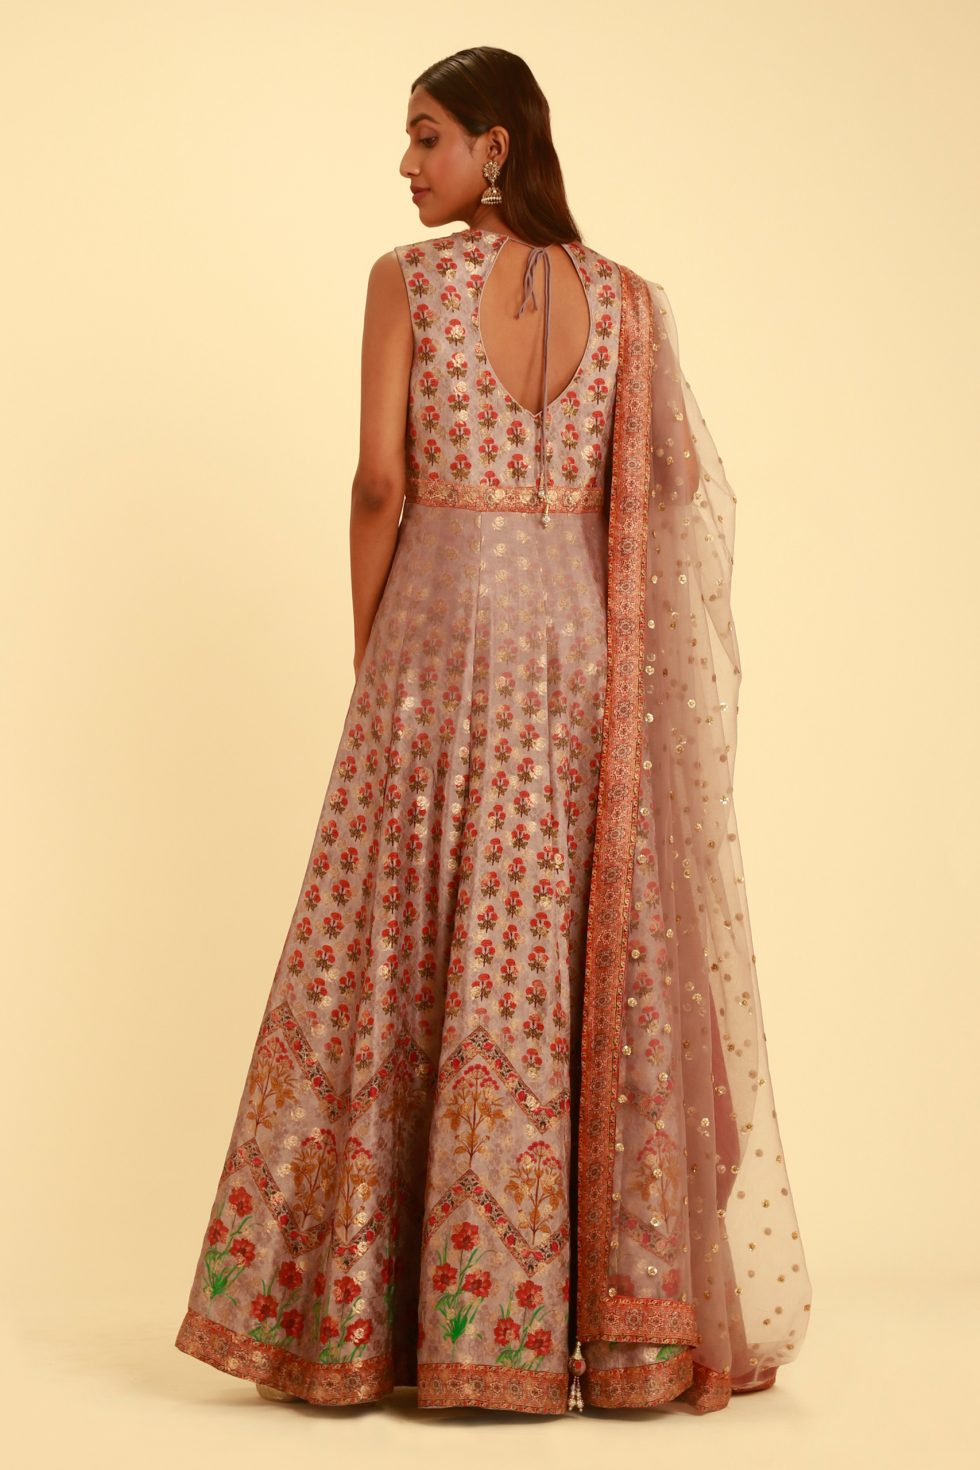 Mauve purple printed banarasi anarkali gown set with gold and silver details and matching dupatta